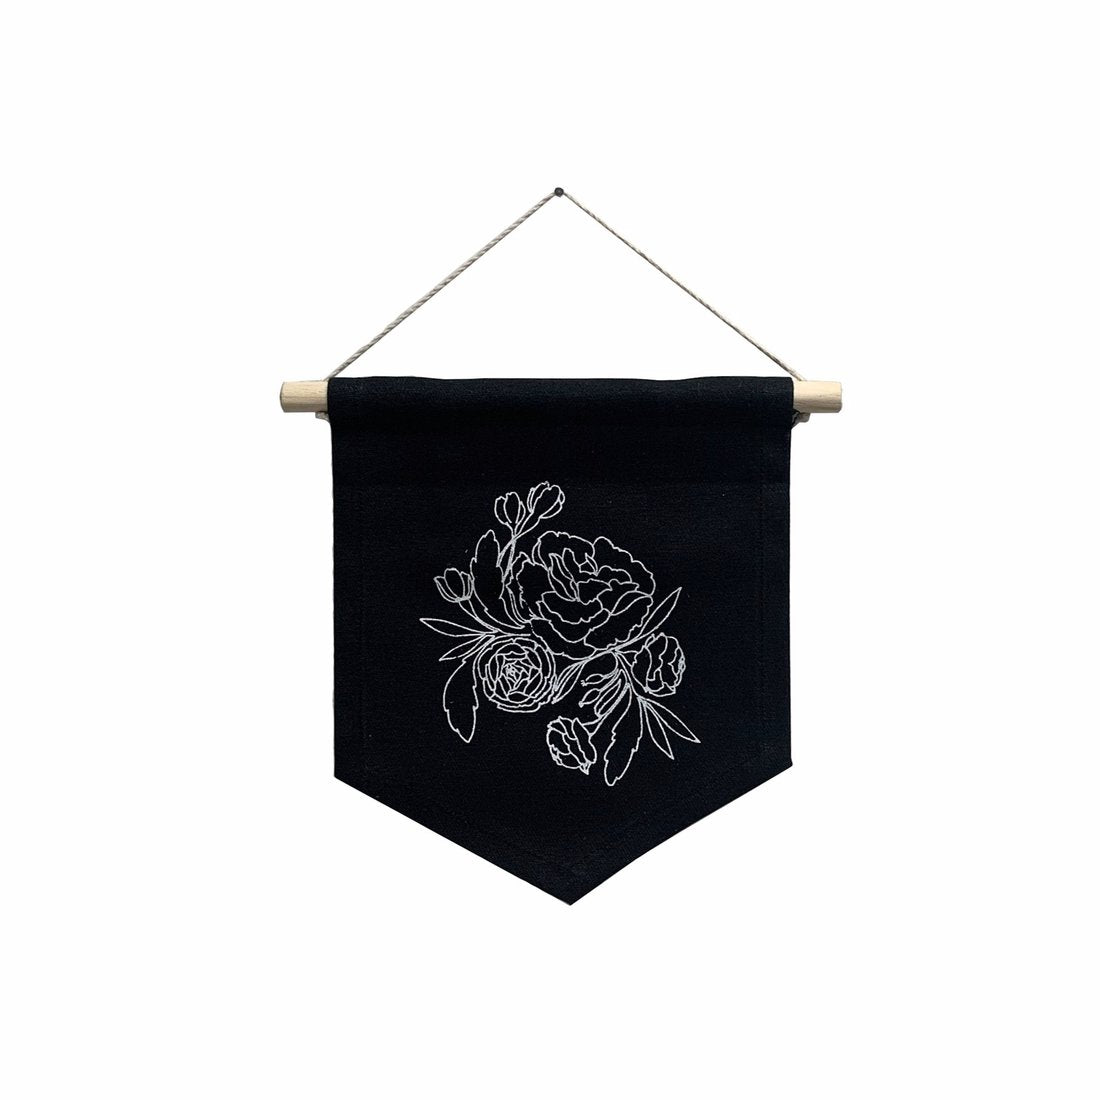 The Sarah Banner in Black